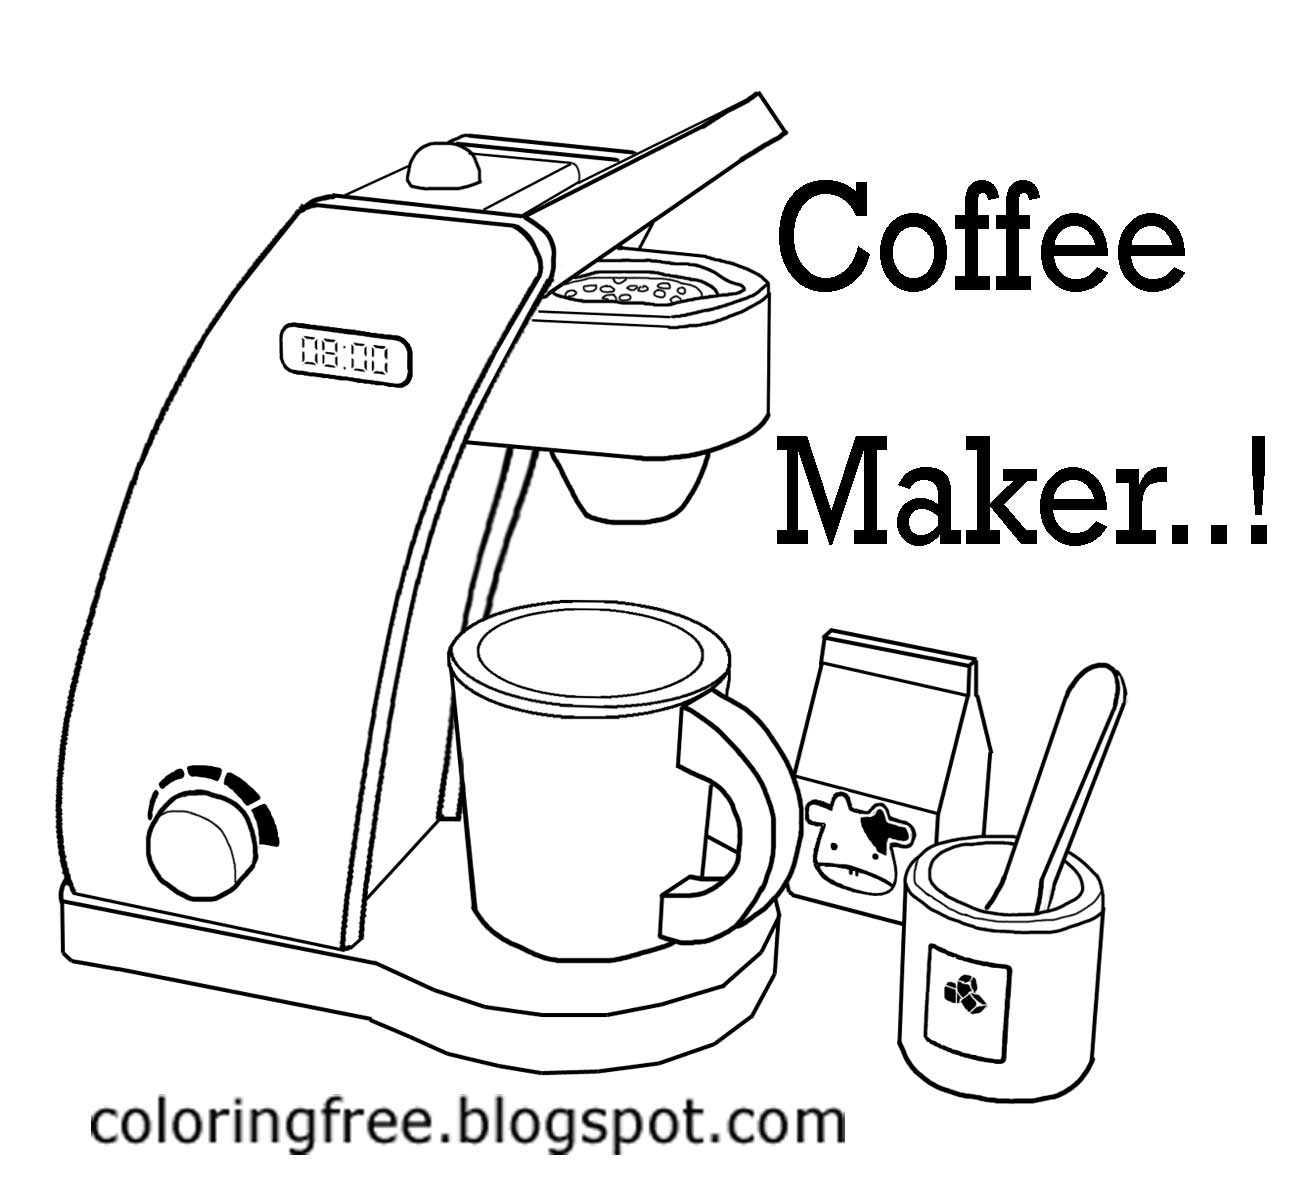 Coffee Art Maker Set Free Coloring Pages Printable Pictures To Color Kids And